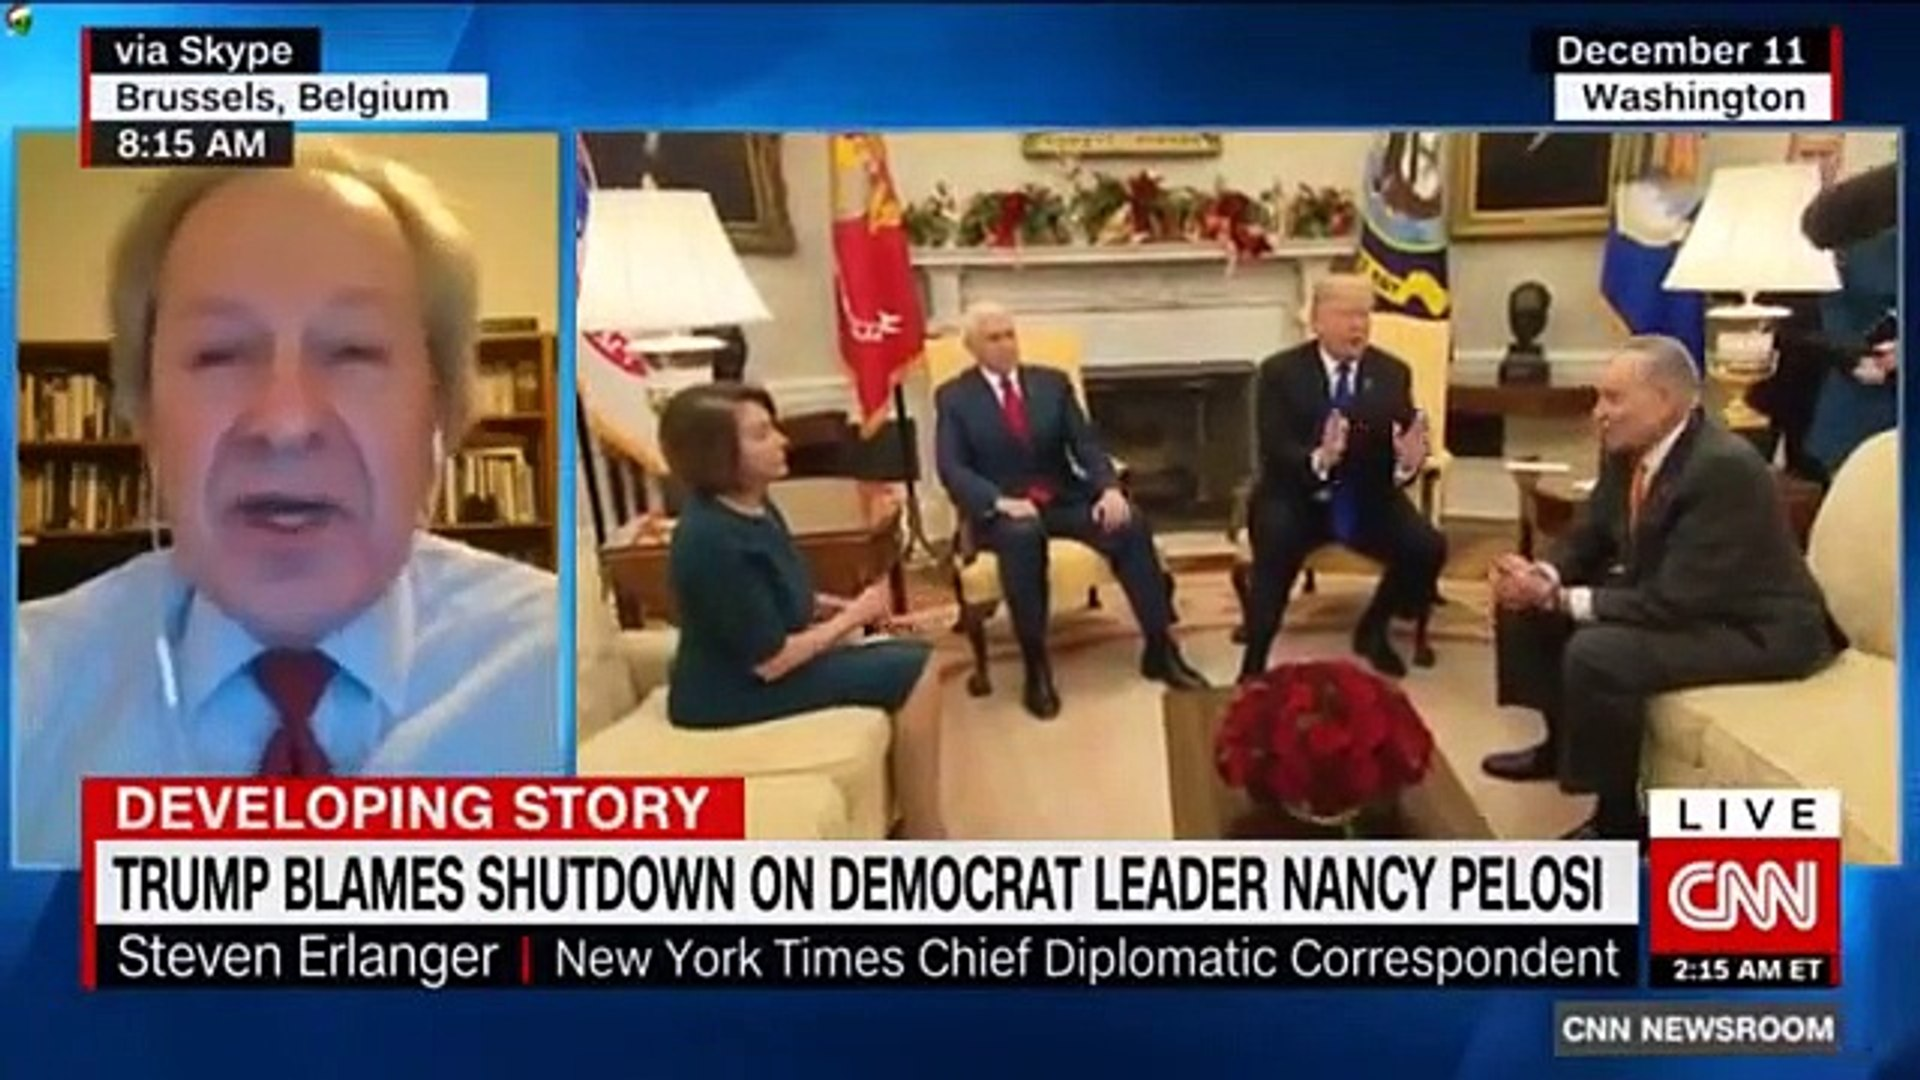 BREAKING NEWS TRUMP DOUBLES DOWN ON BORDER WALL AS SHUTDOWN CONTINUES #TRUMP #NEWS #DEVELOPING #STOR